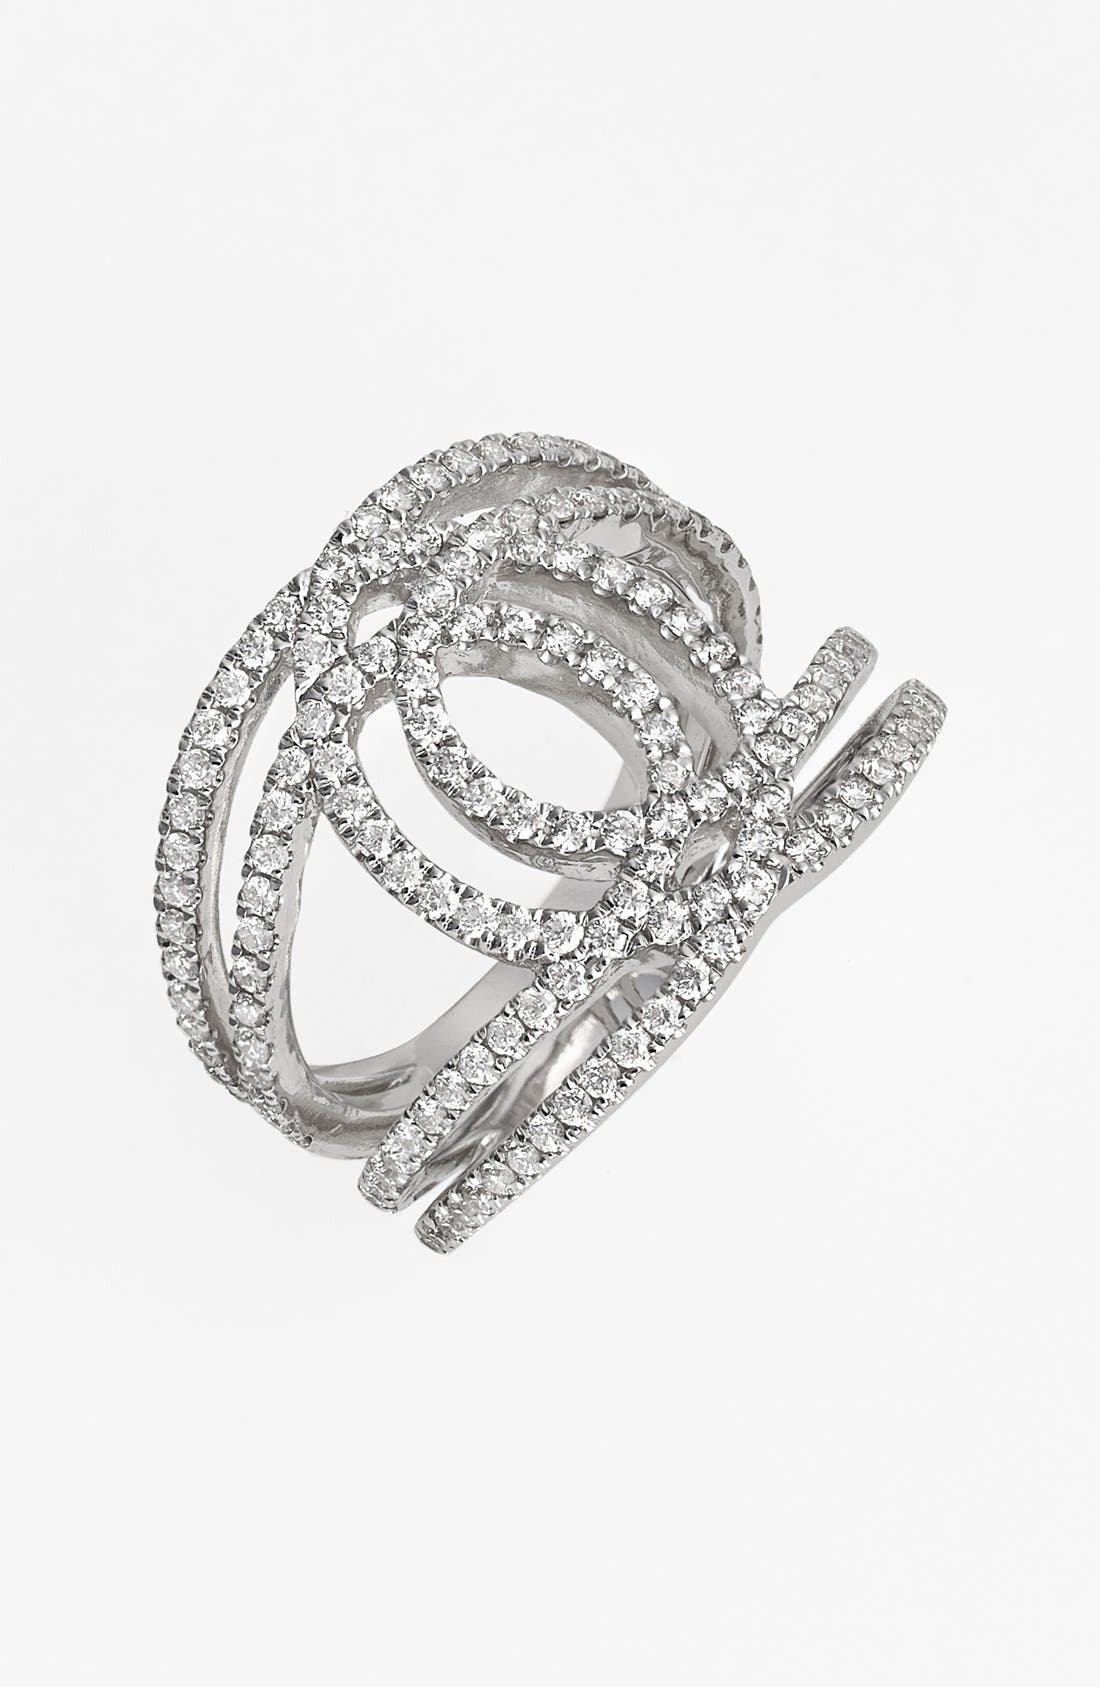 Alternate Image 1 Selected - Bony Levy 'Double Interlock' Diamond Cocktail Ring (Nordstrom Exclusive)